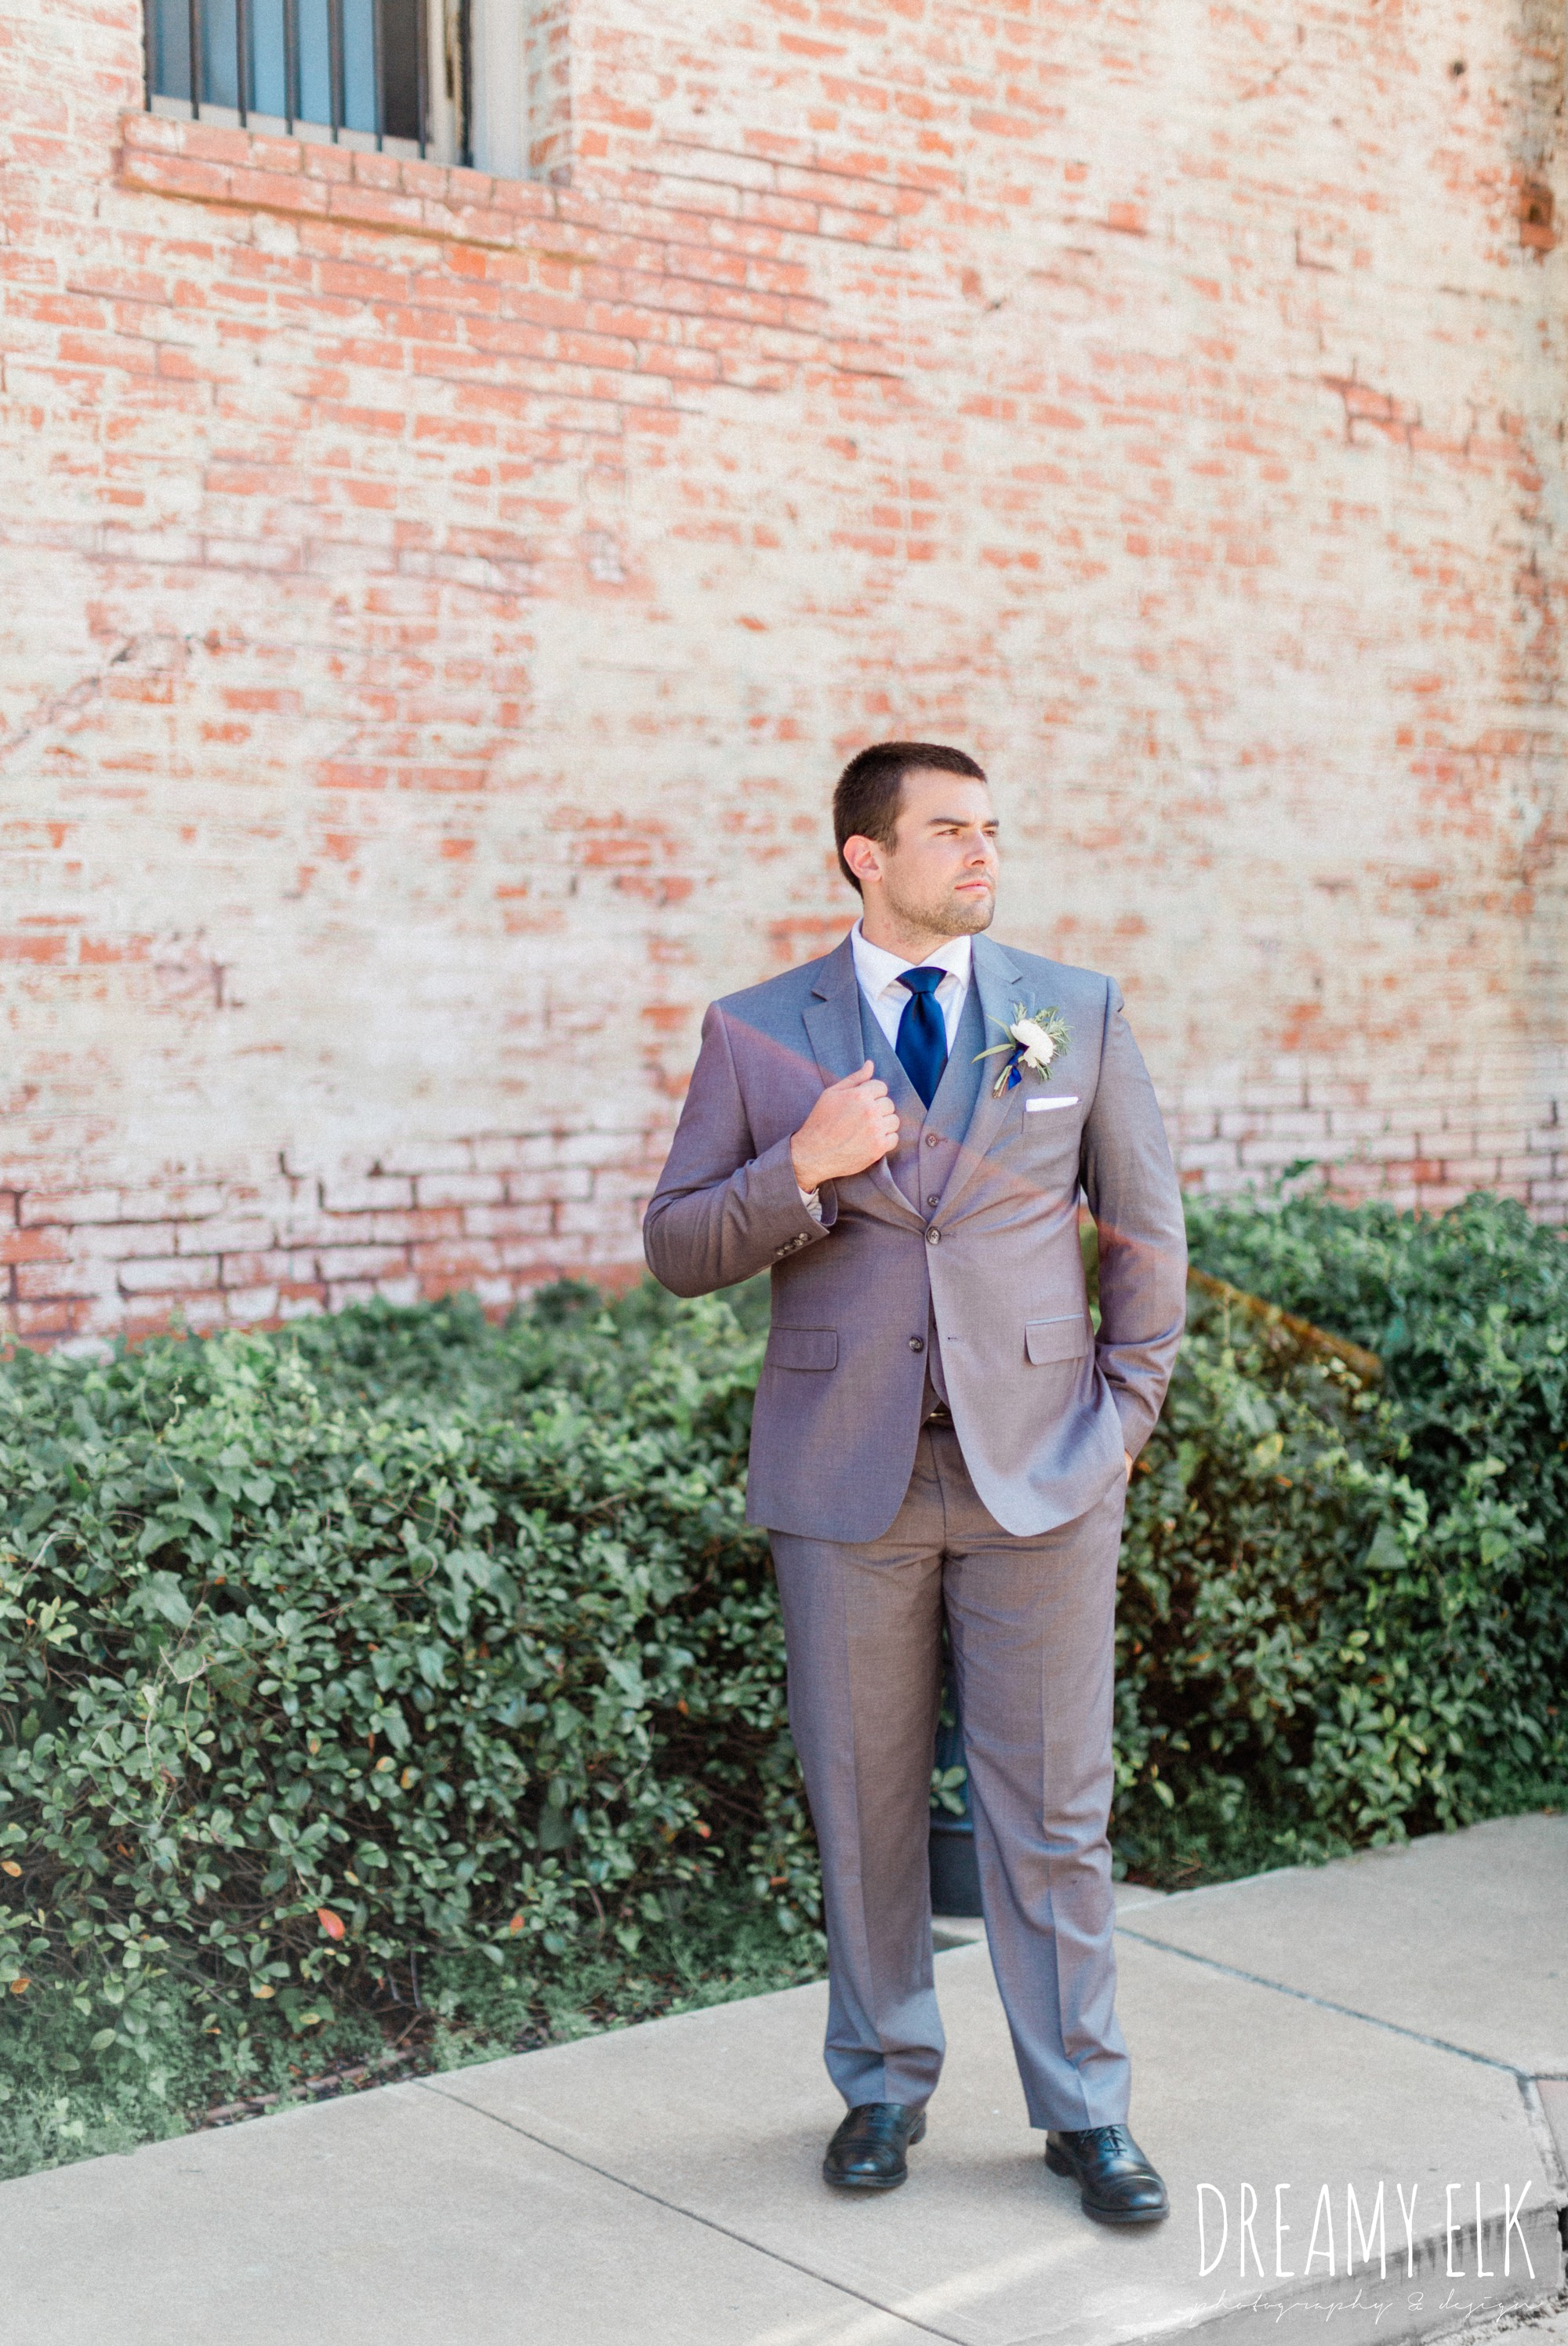 groom, gray suit navy tie, spring wedding photo college station texas, dreamy elk photography and design